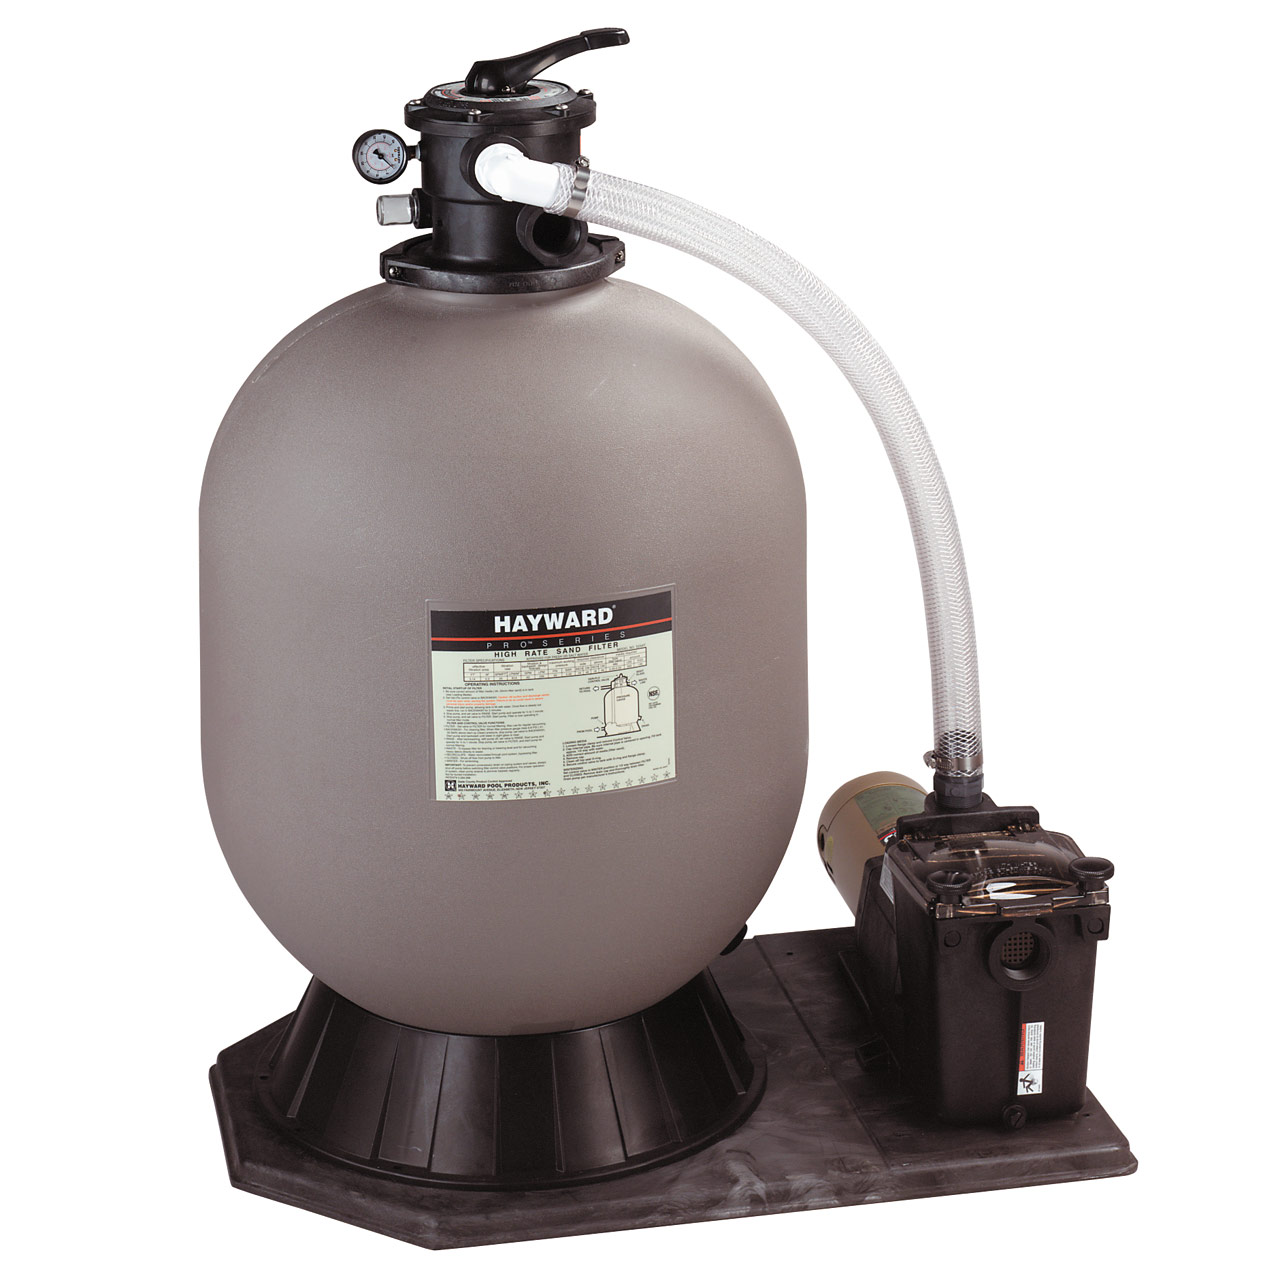 Hayward In-Ground Pro Series 31 Inch Sand Filter System with 1.5 HP Max-Flo XL Pump